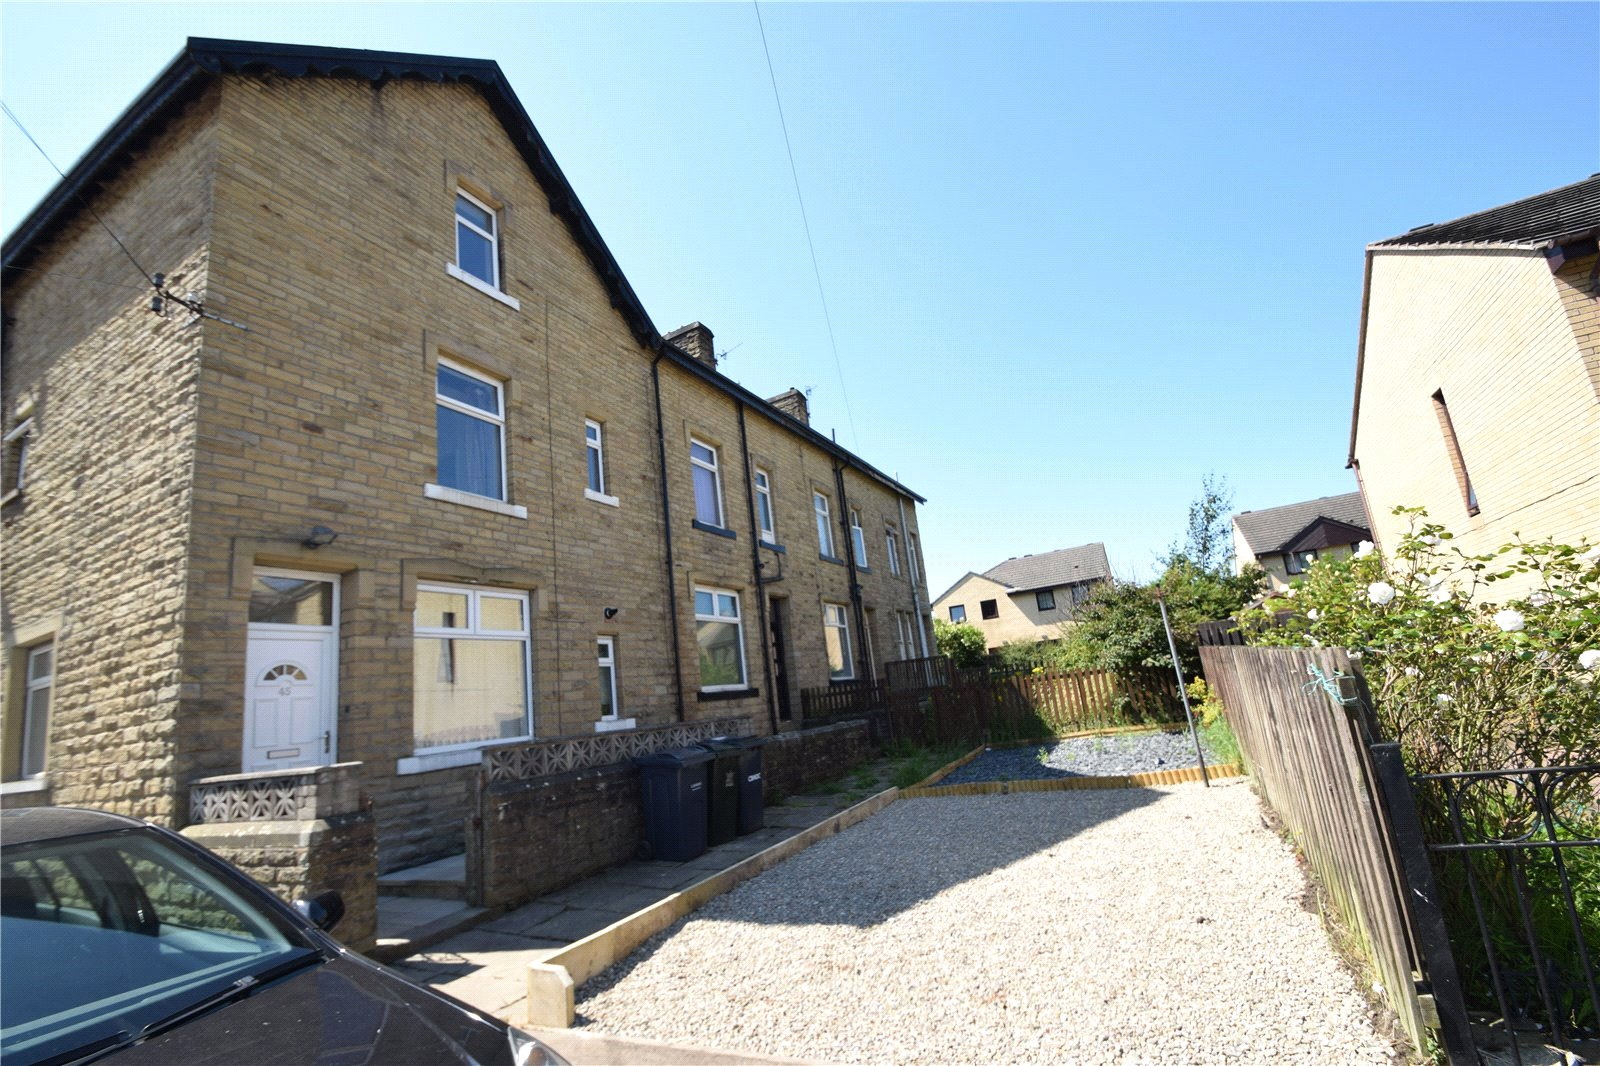 Yorkshire Terrace: Whitegates Keighley 2 Bedroom House Let Agreed In